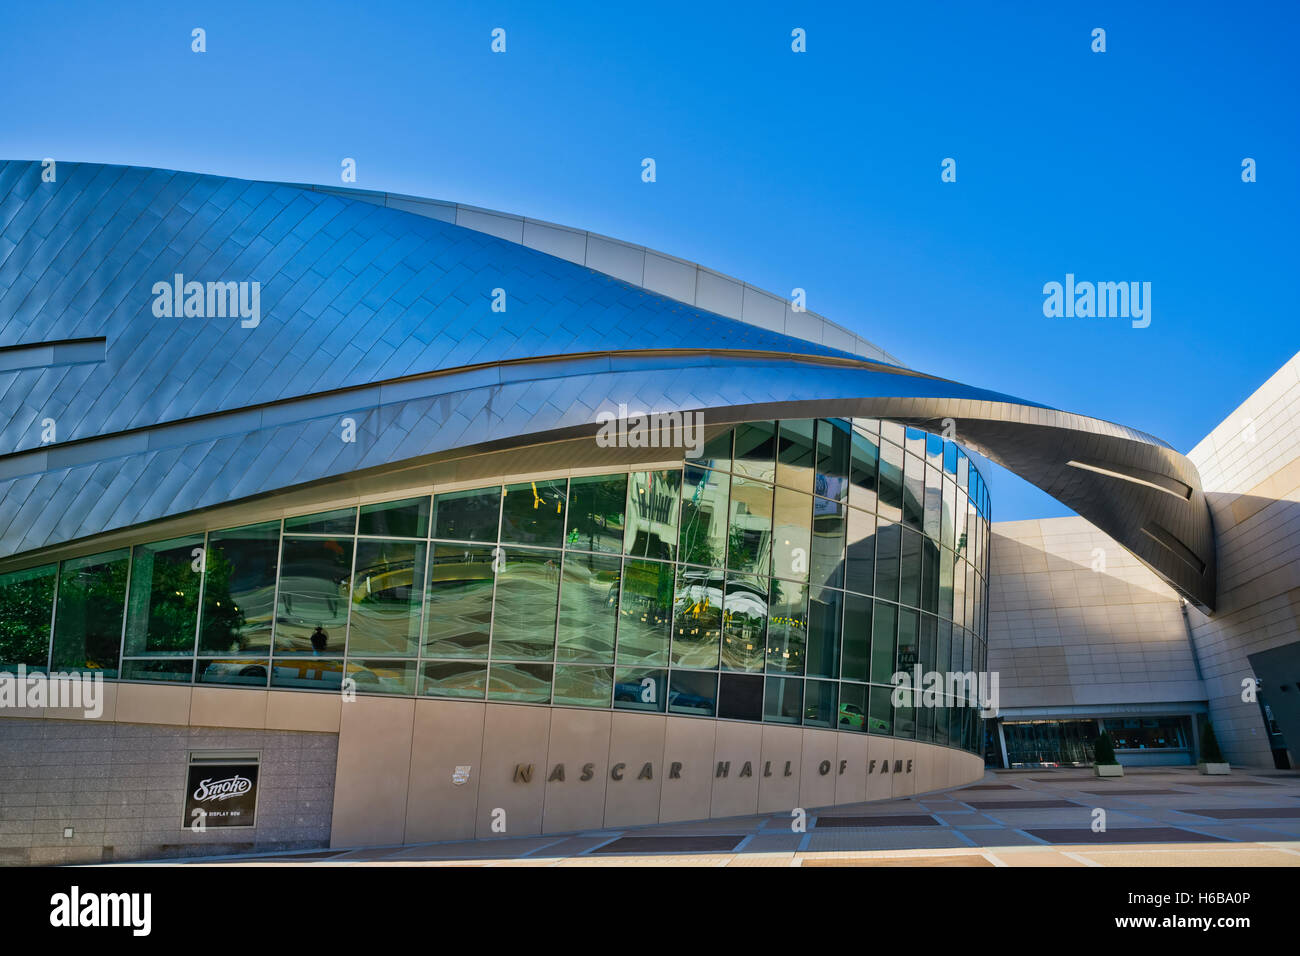 Nascar Hall Of Fame, Charlotte, NC - Stock Image